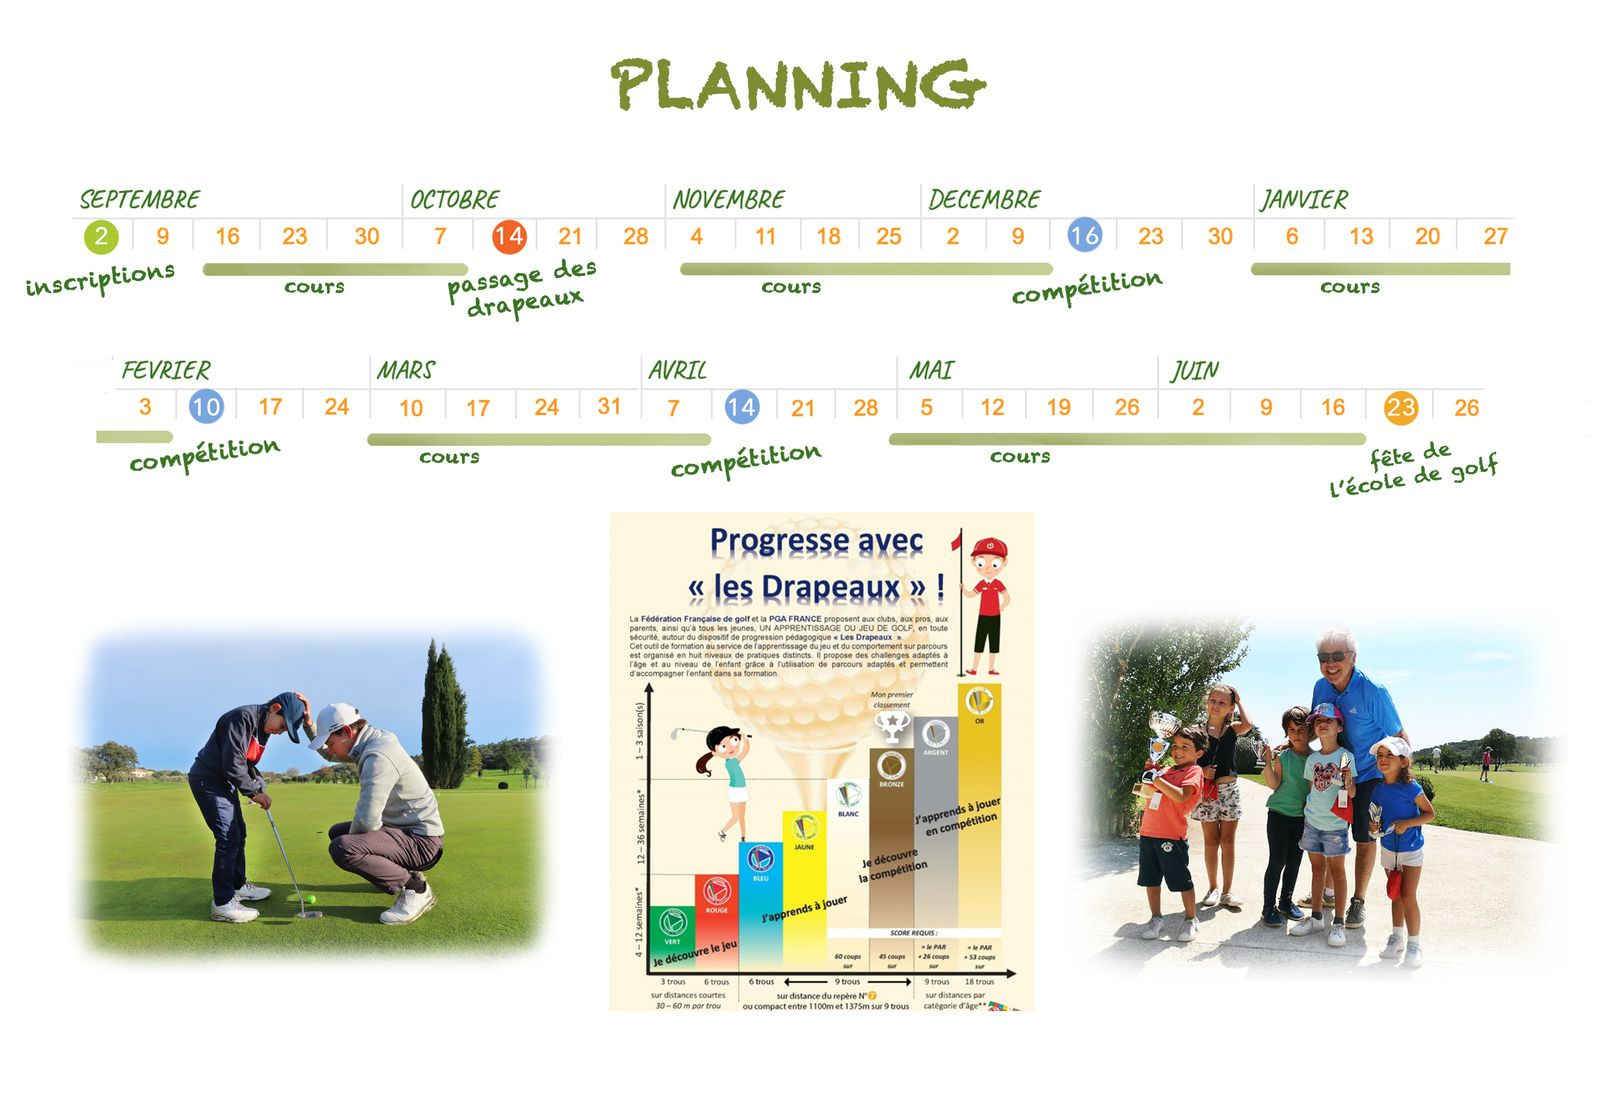 PLANNING COURS 2020/2021